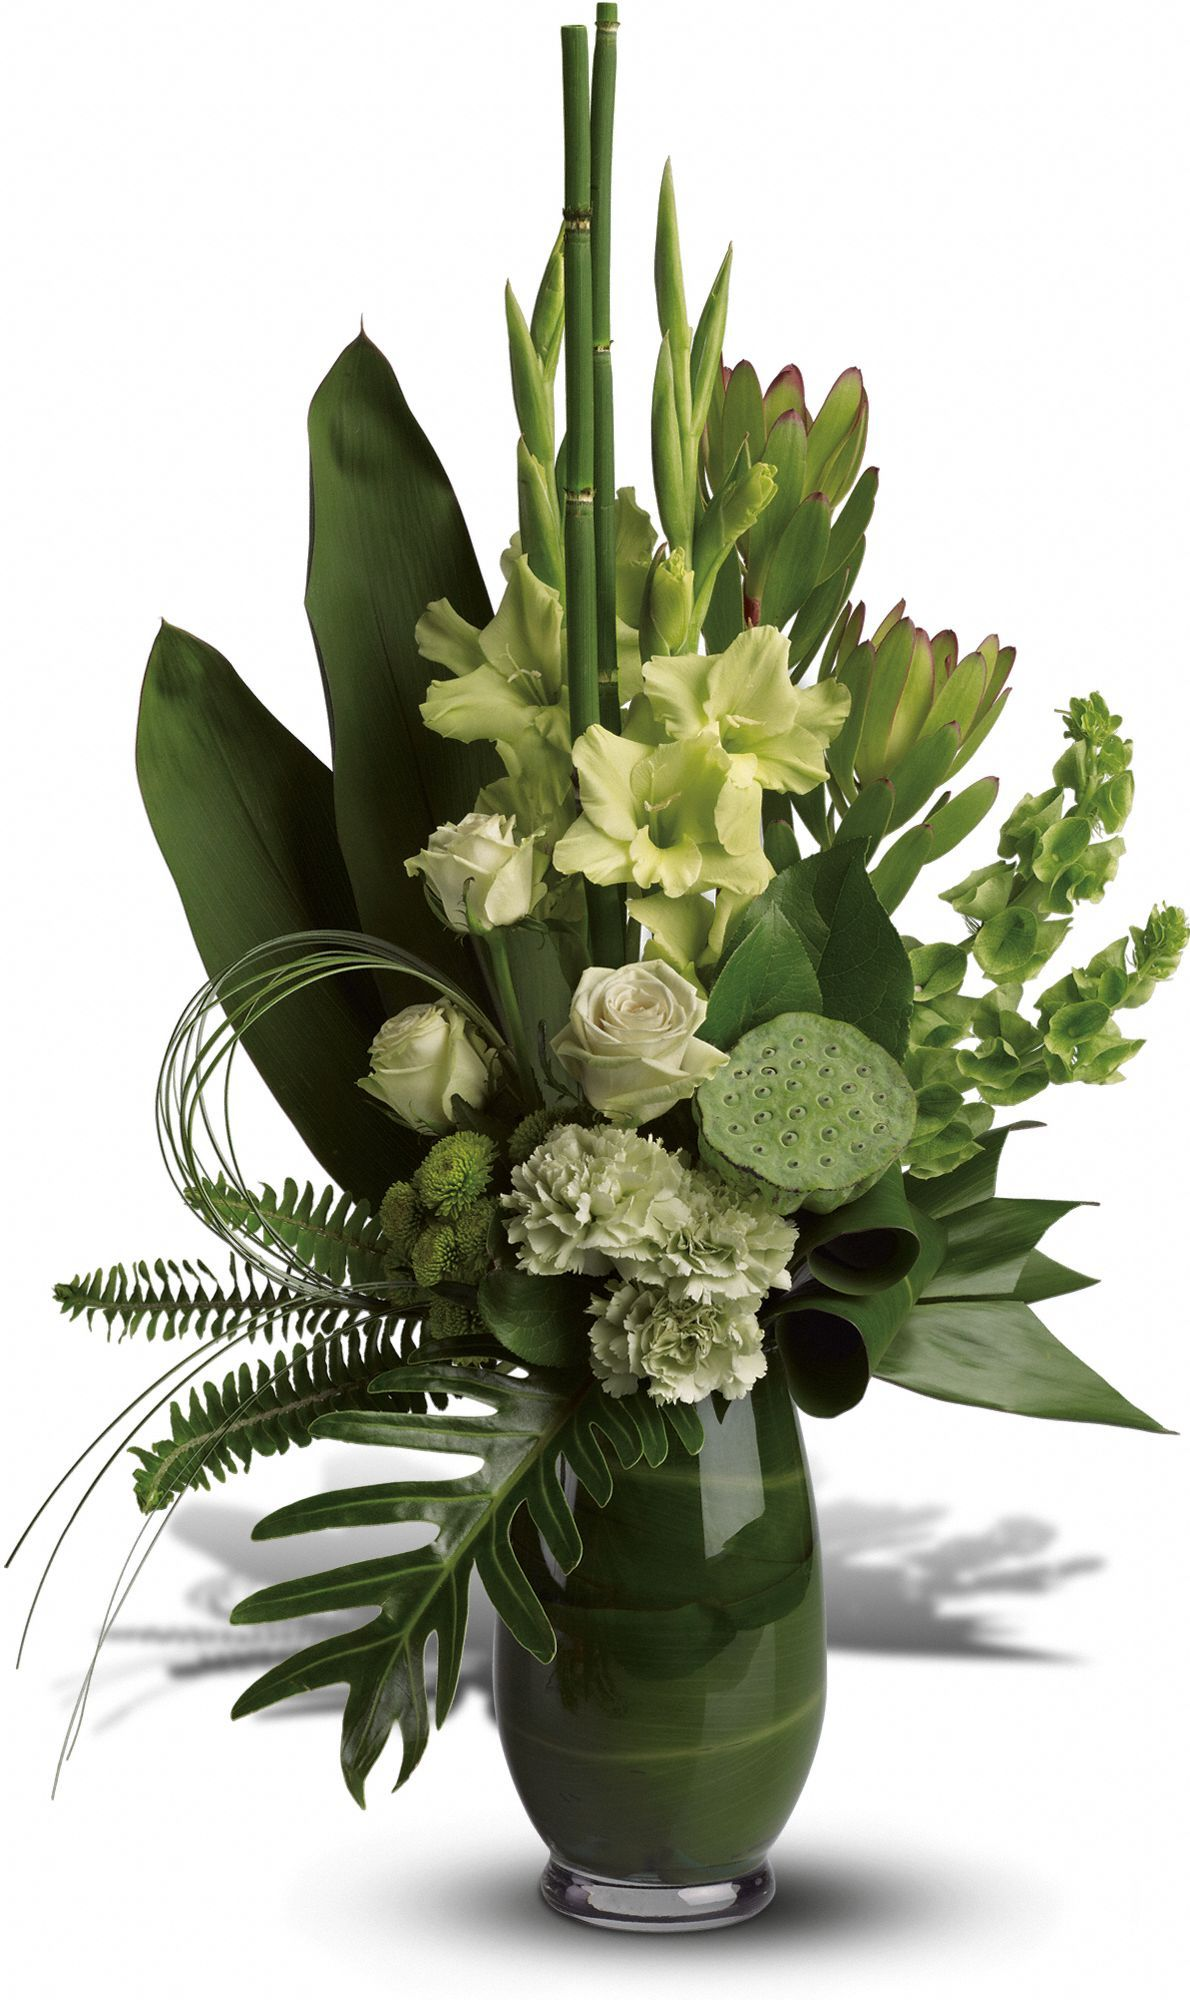 Limelight Bouquet Flowers, Limelight Flower Bouquet  Telefloracom